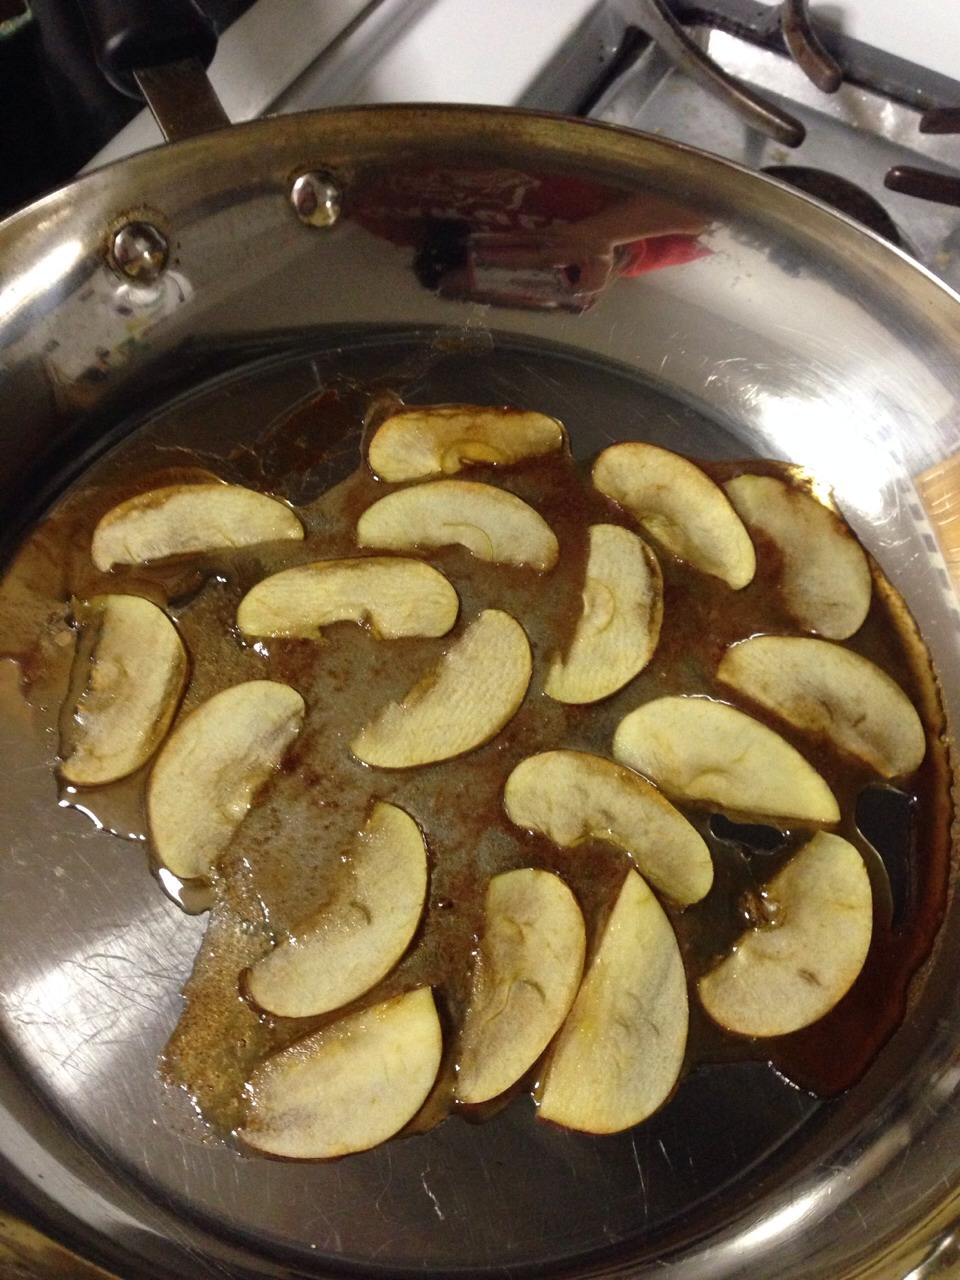 Mix the sugar and cinnamon together  Add a few table spoons of water until you get a thick dark syrup Caramelize the slices of apple with the syrup.  Make sure each slice fully touches the surface of the pan. Try to keep the slices in tact.